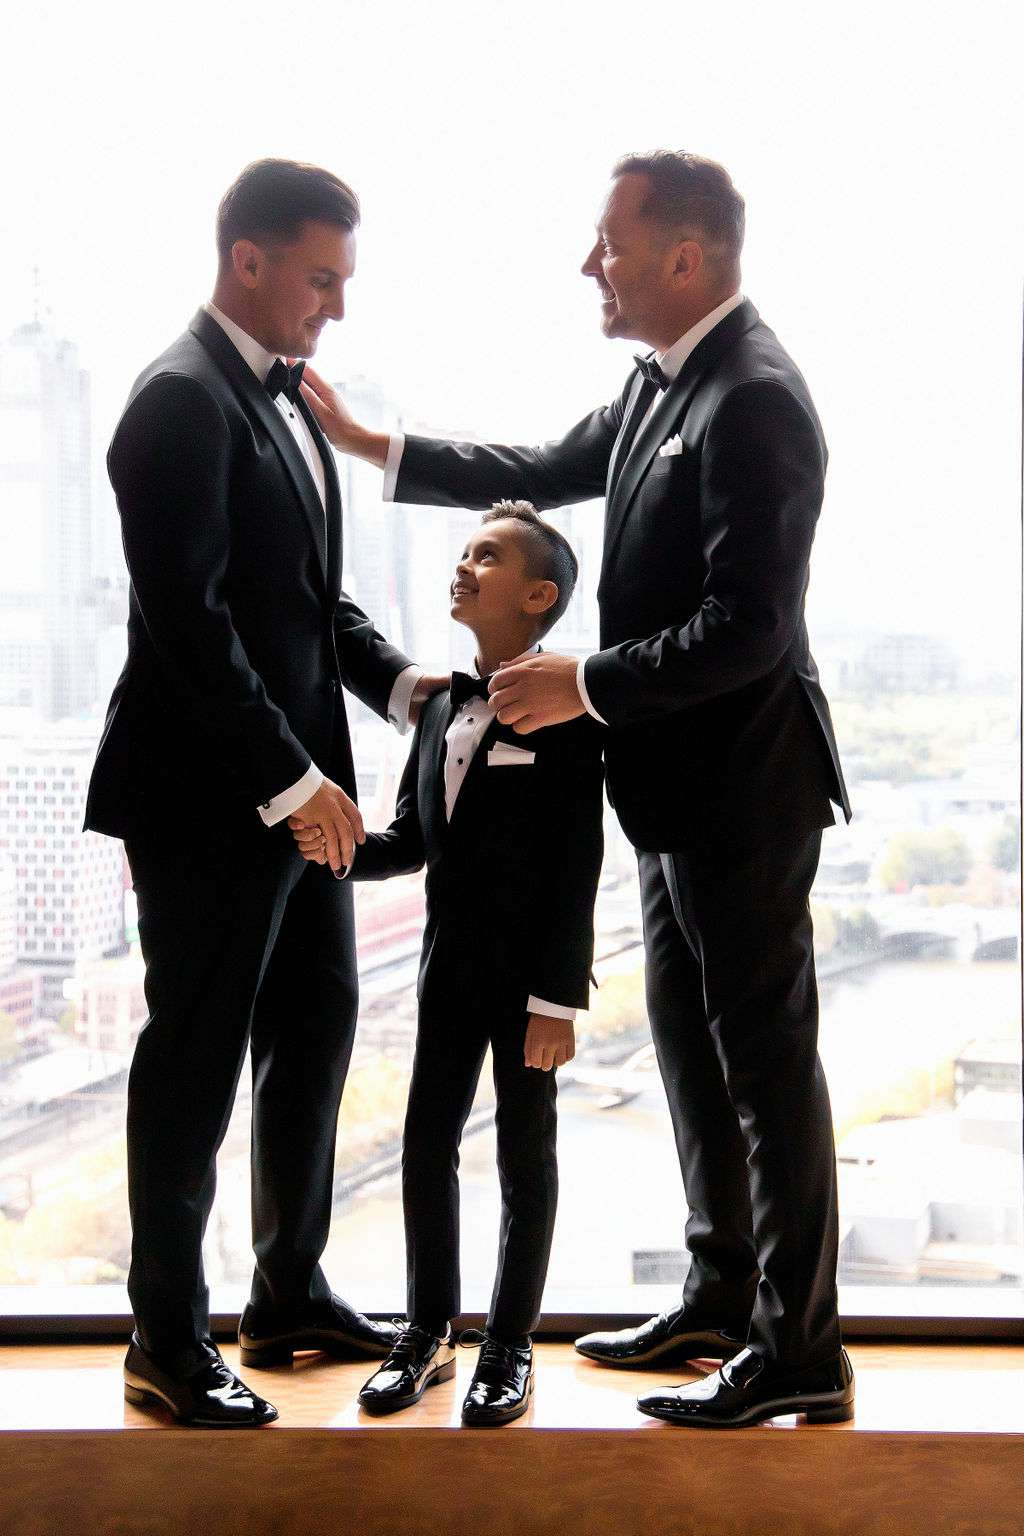 two fathers and son